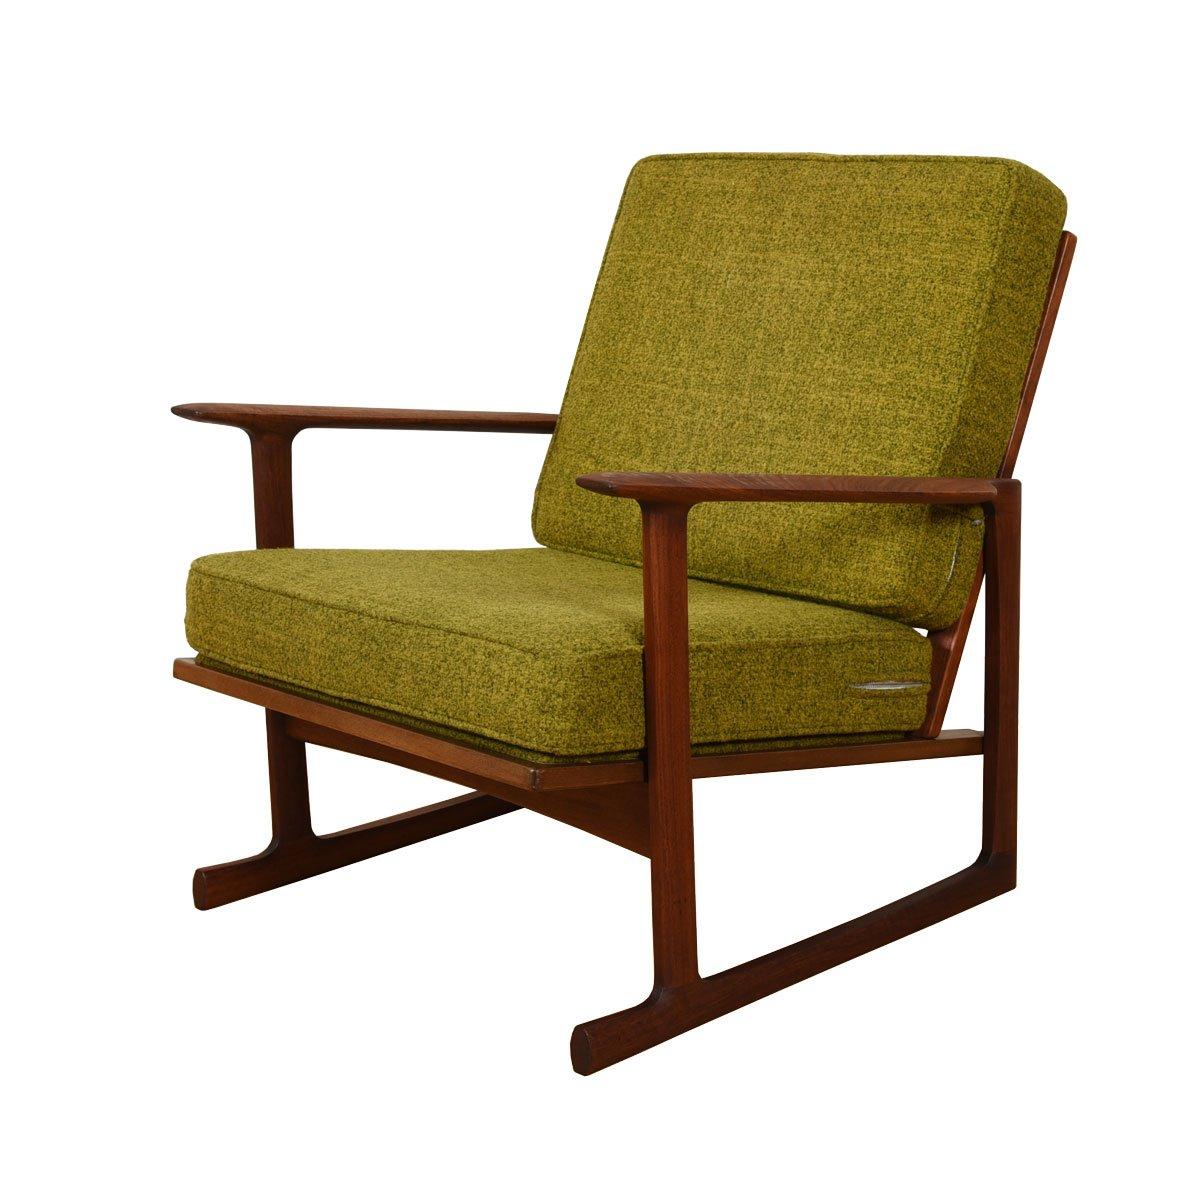 Early Pair of Kofod Larsen Sleigh-Leg Easy Chairs for Selig